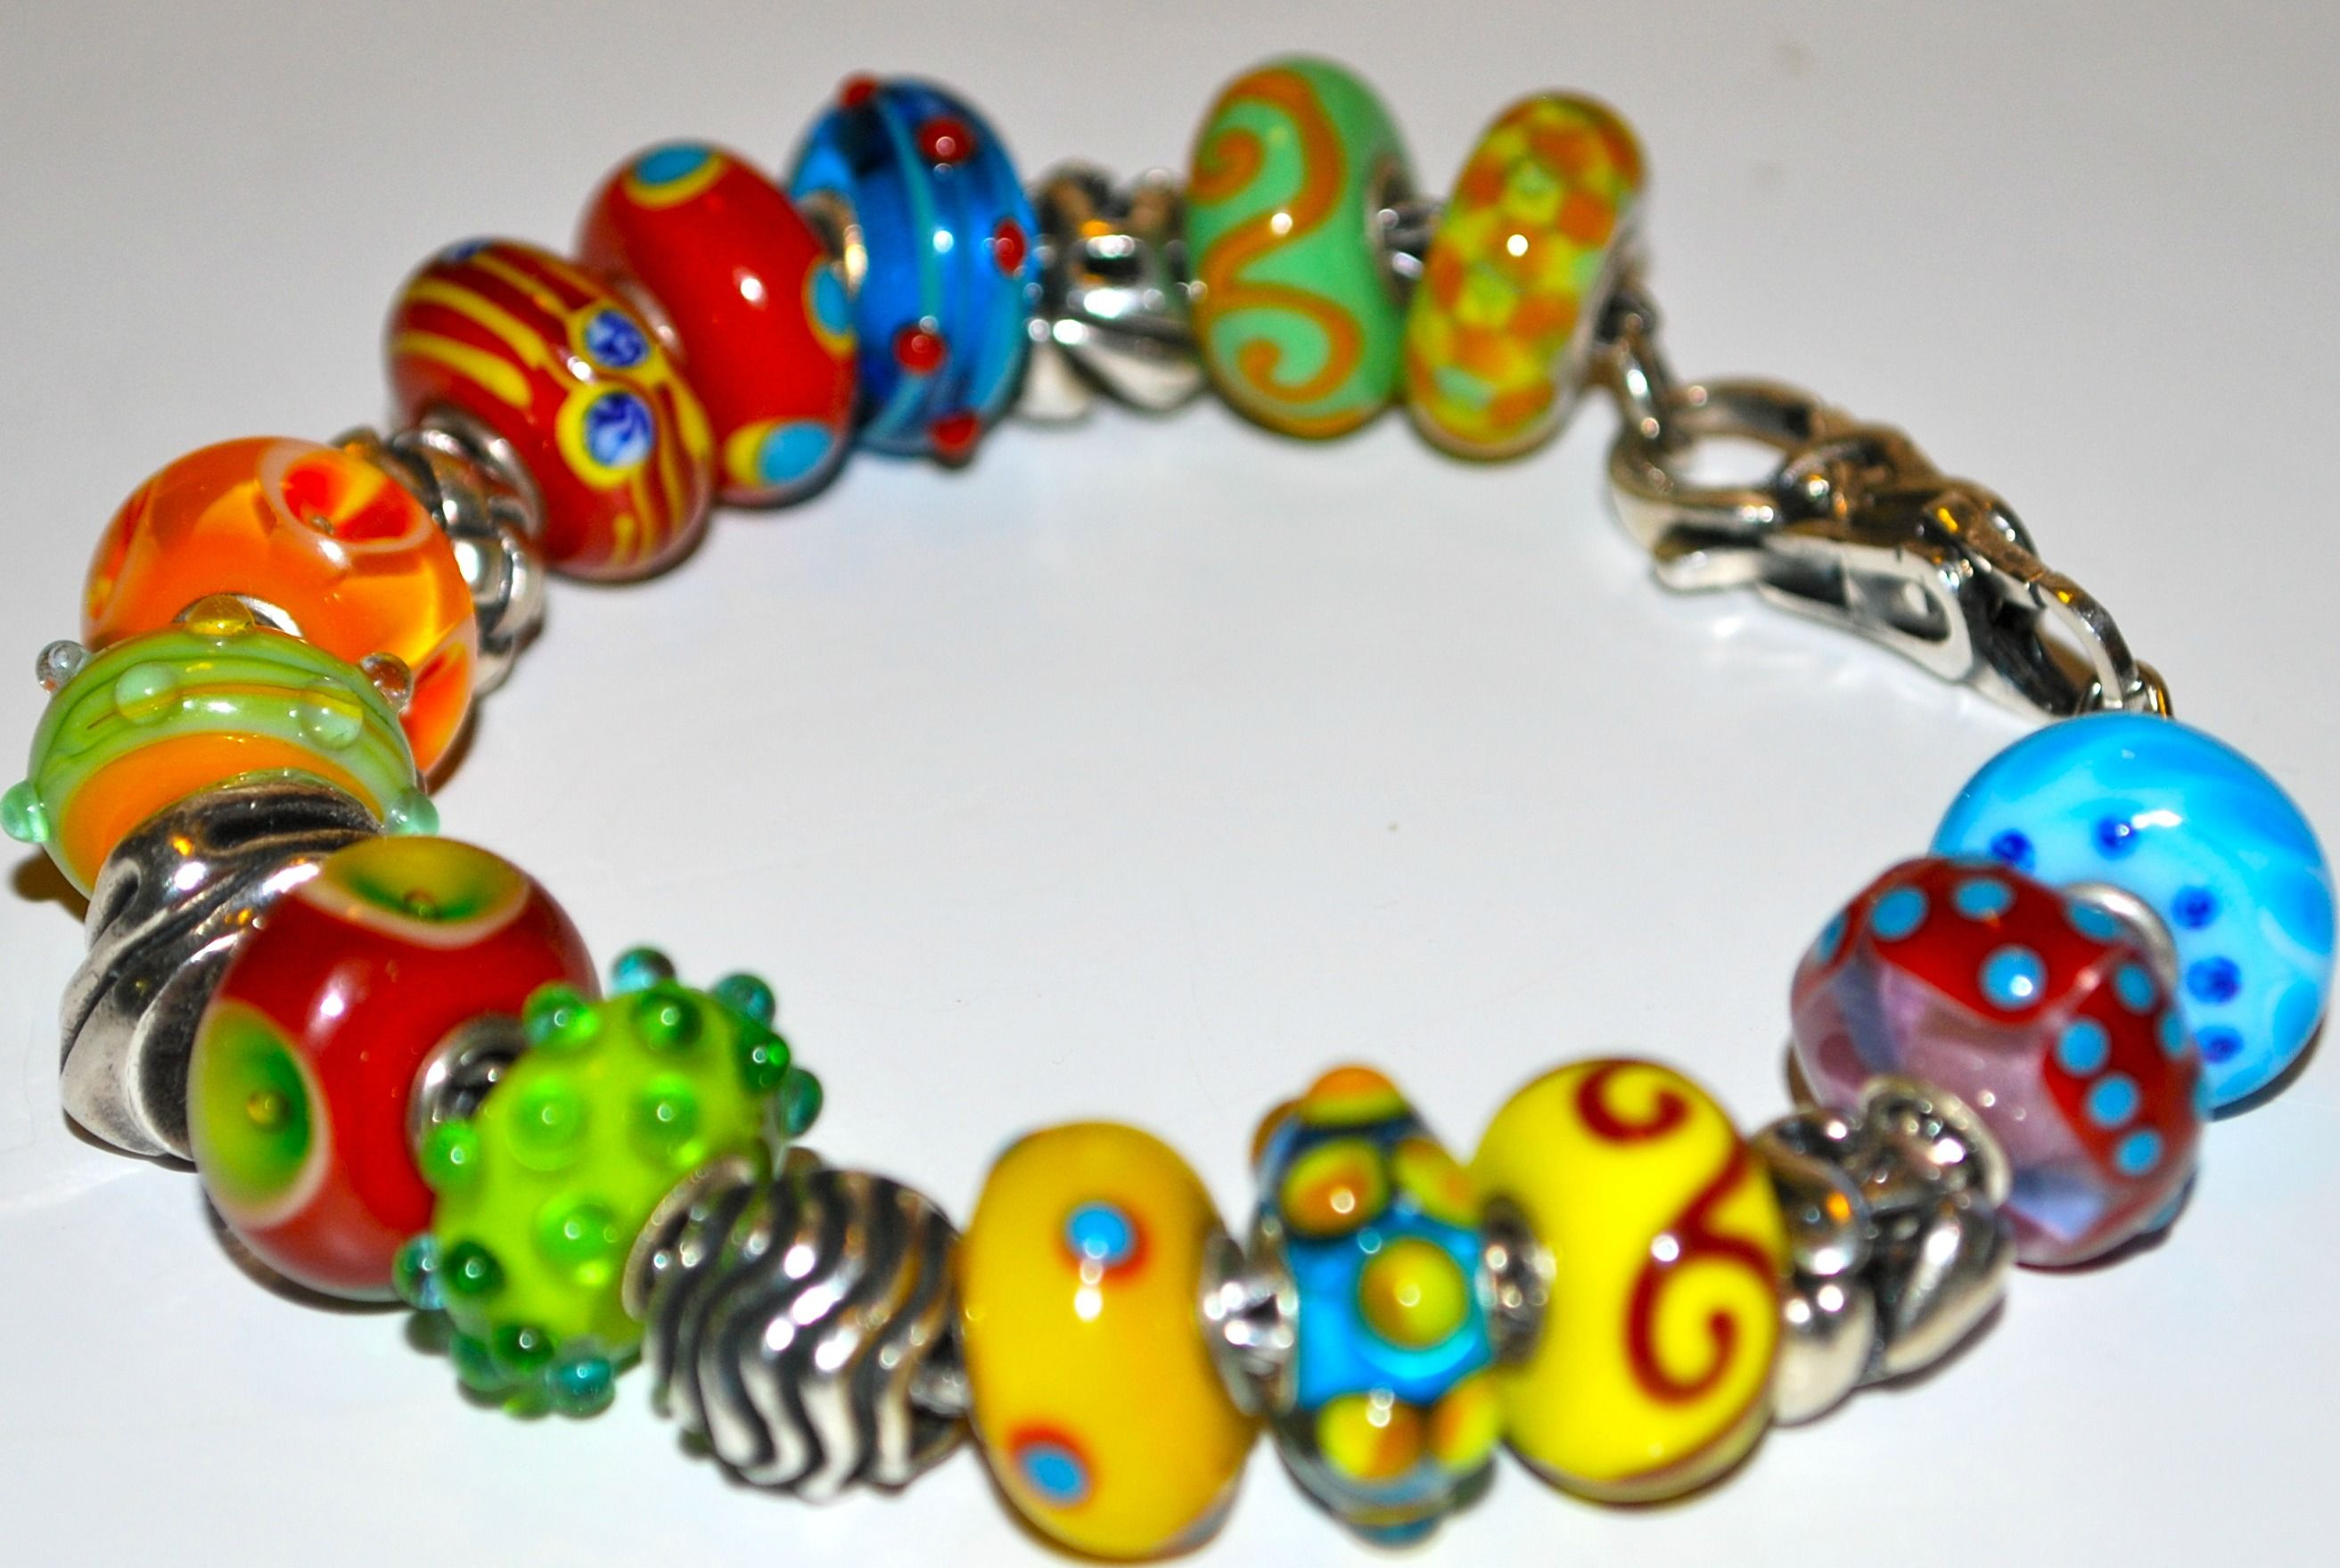 This bracelet is so lively and fun, perfect summertime party bracelet! <3 #trollbeads